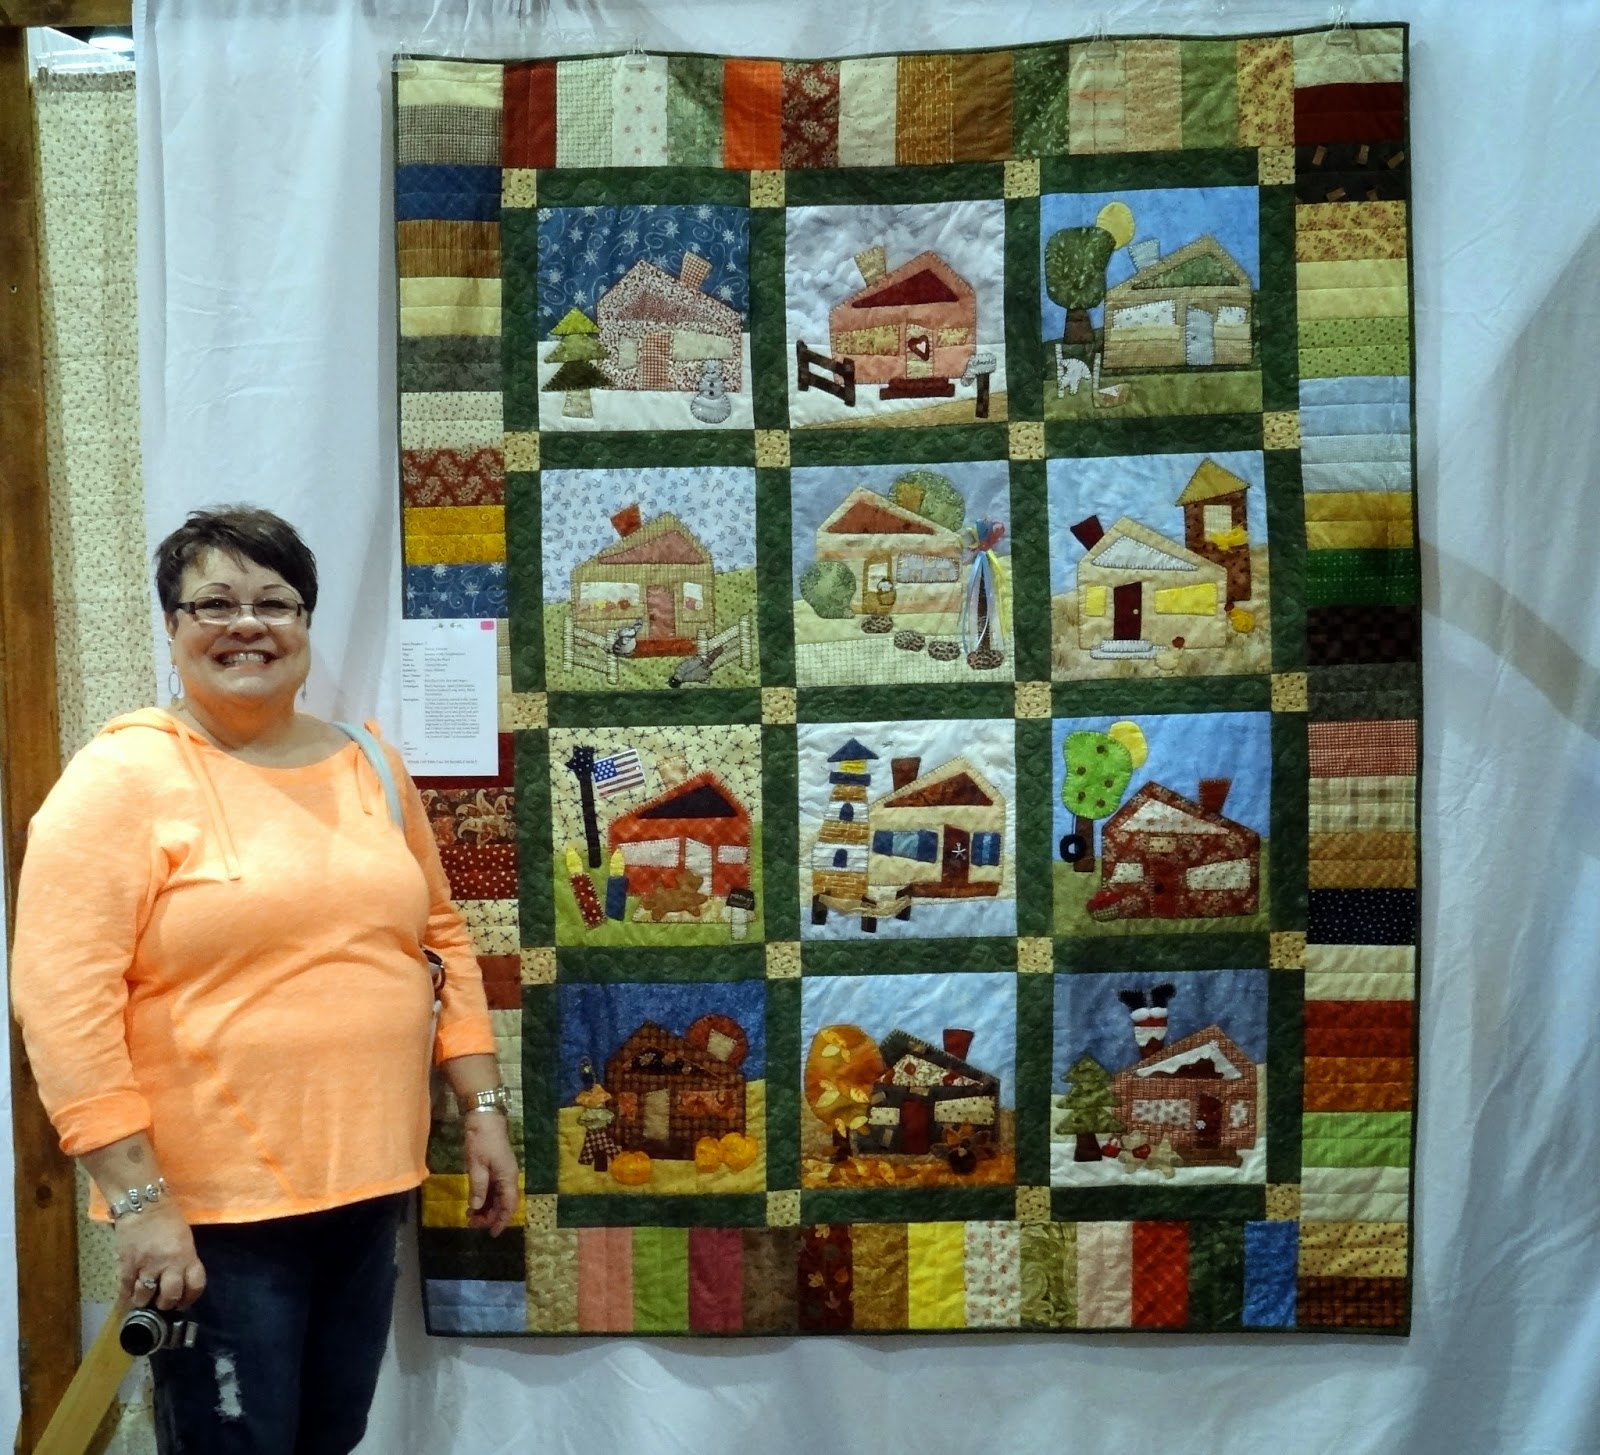 Squash House Quilts: Quilt Show in the Big City : theme quilts - Adamdwight.com